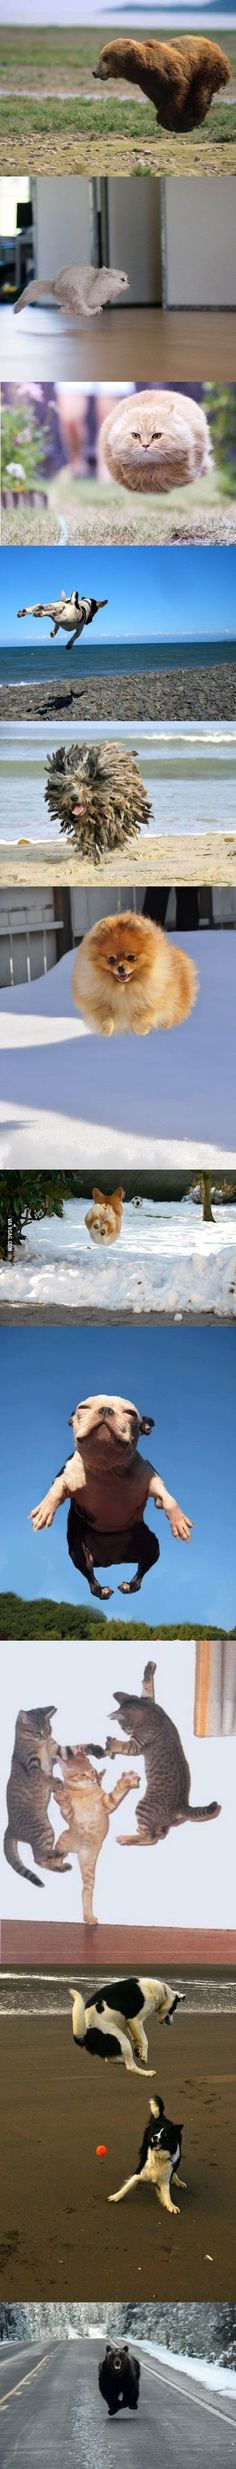 9GAG - Hover animals